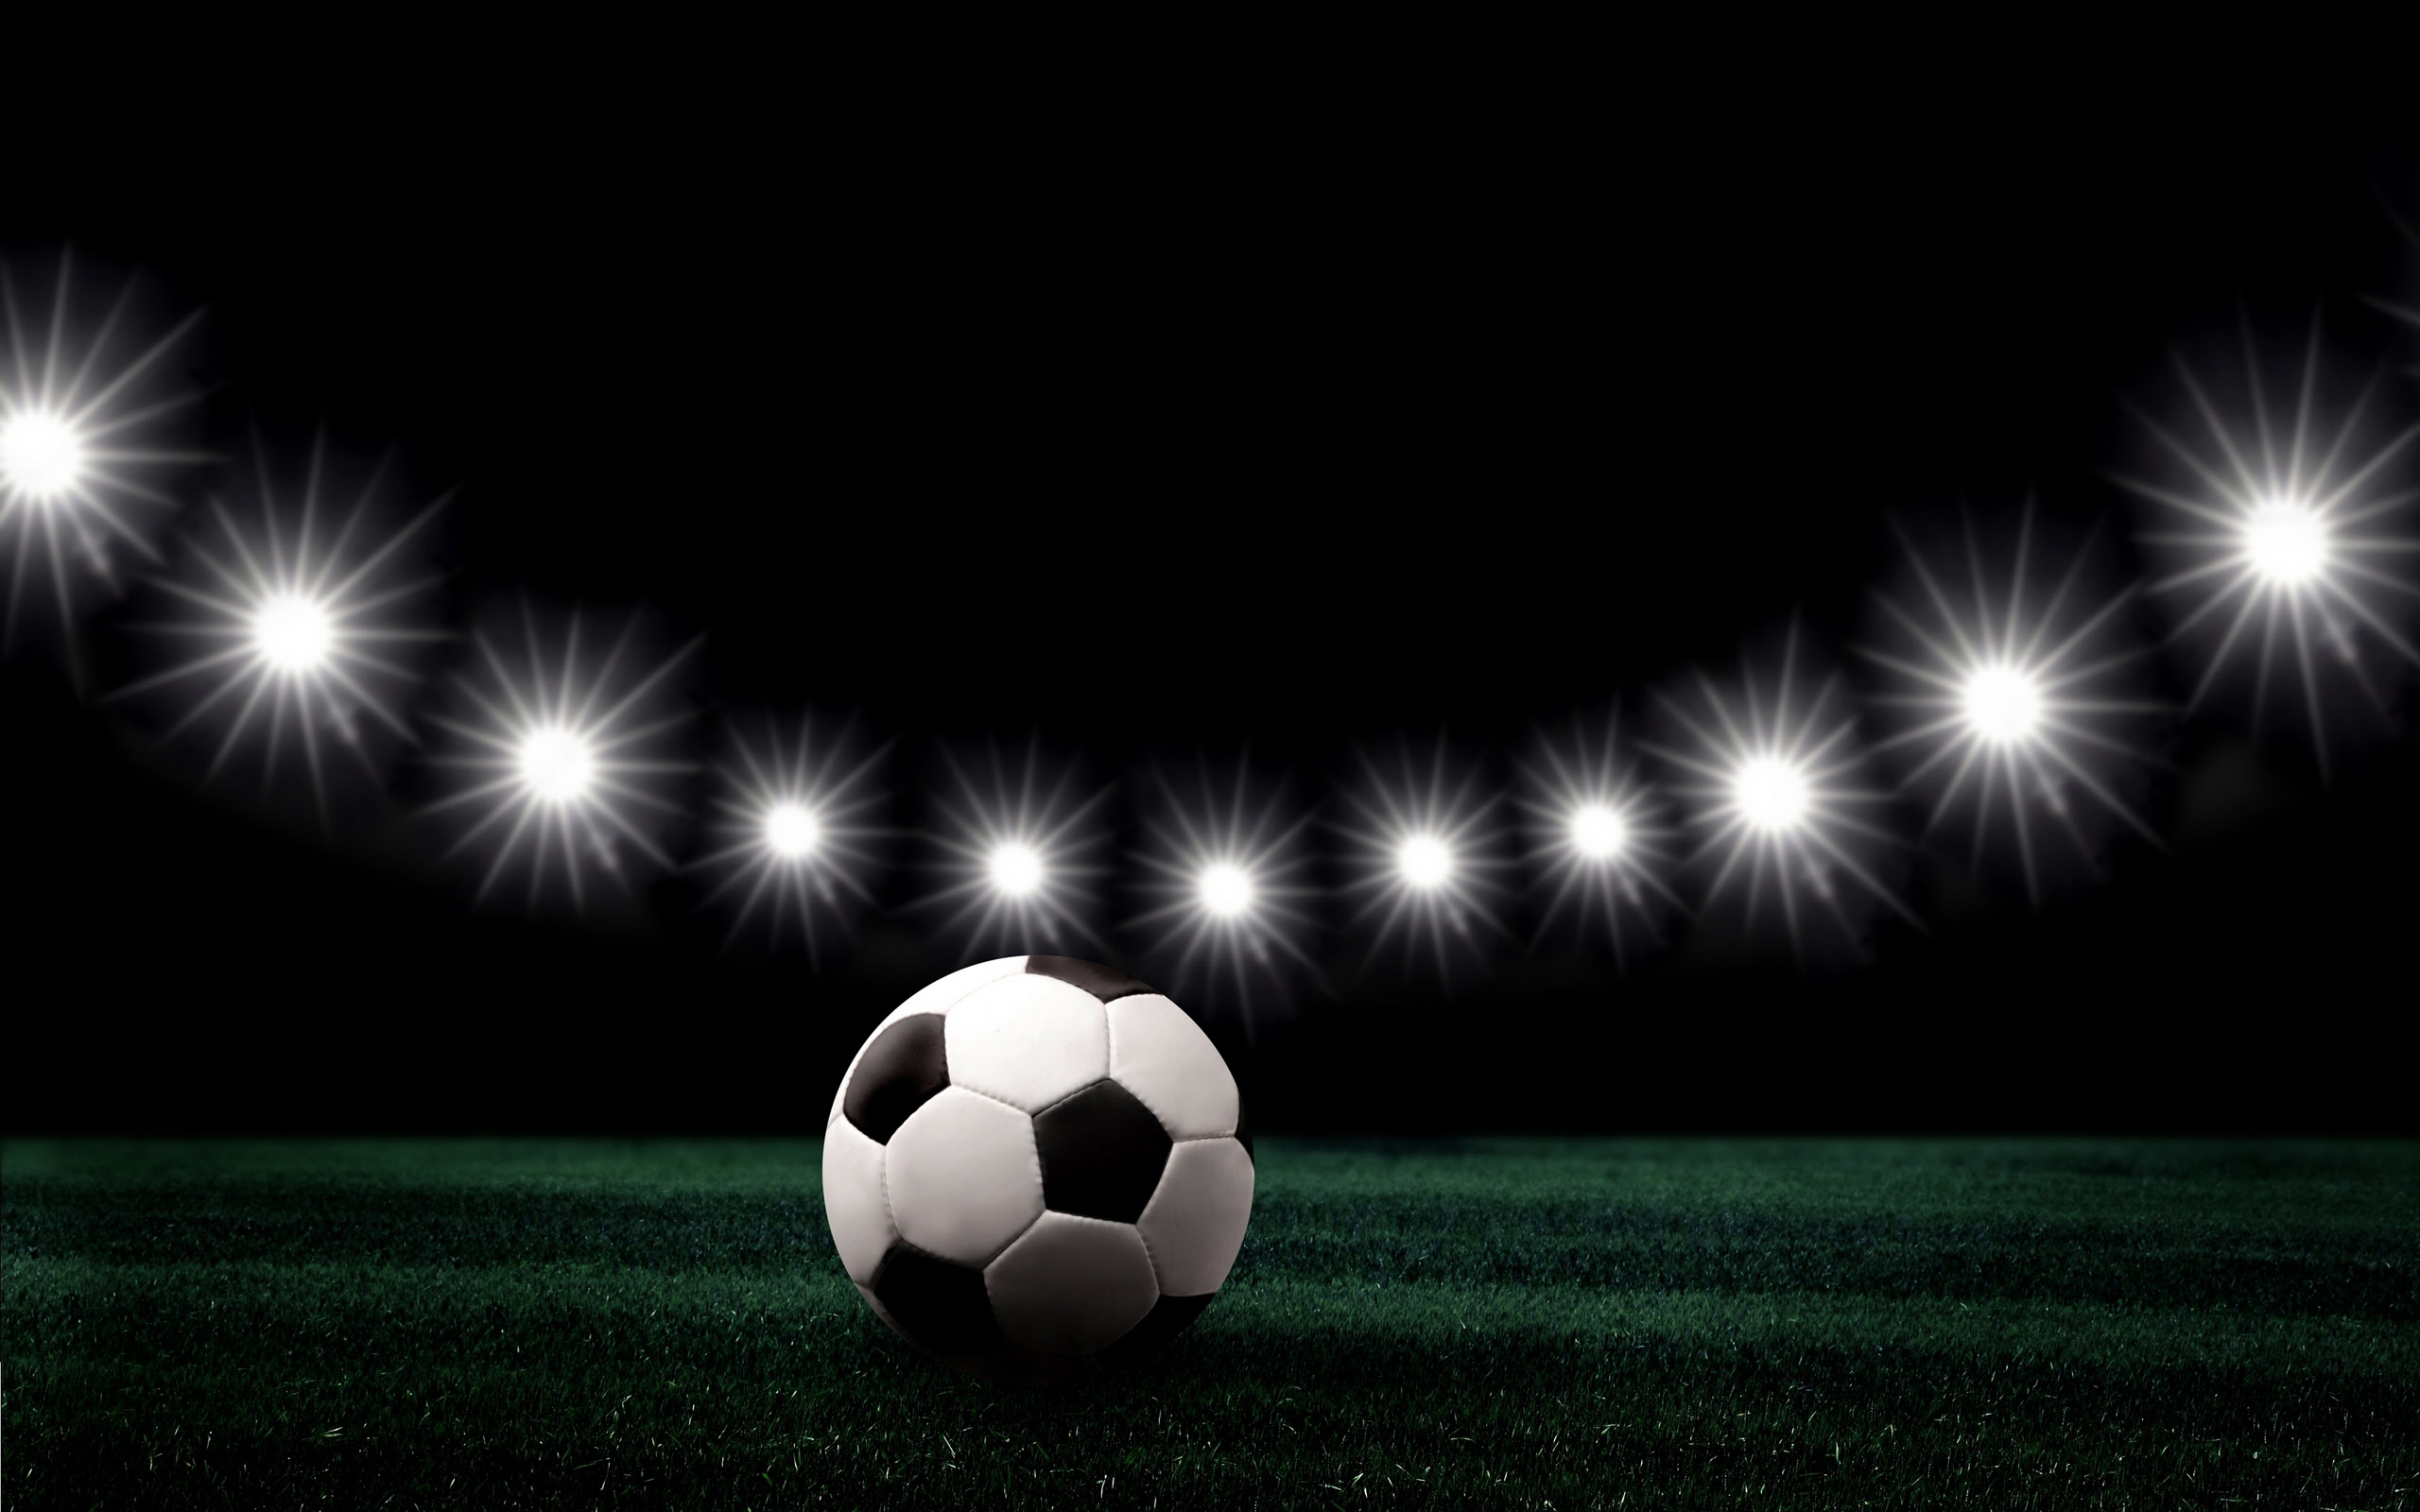 Wallpapers Of Soccer